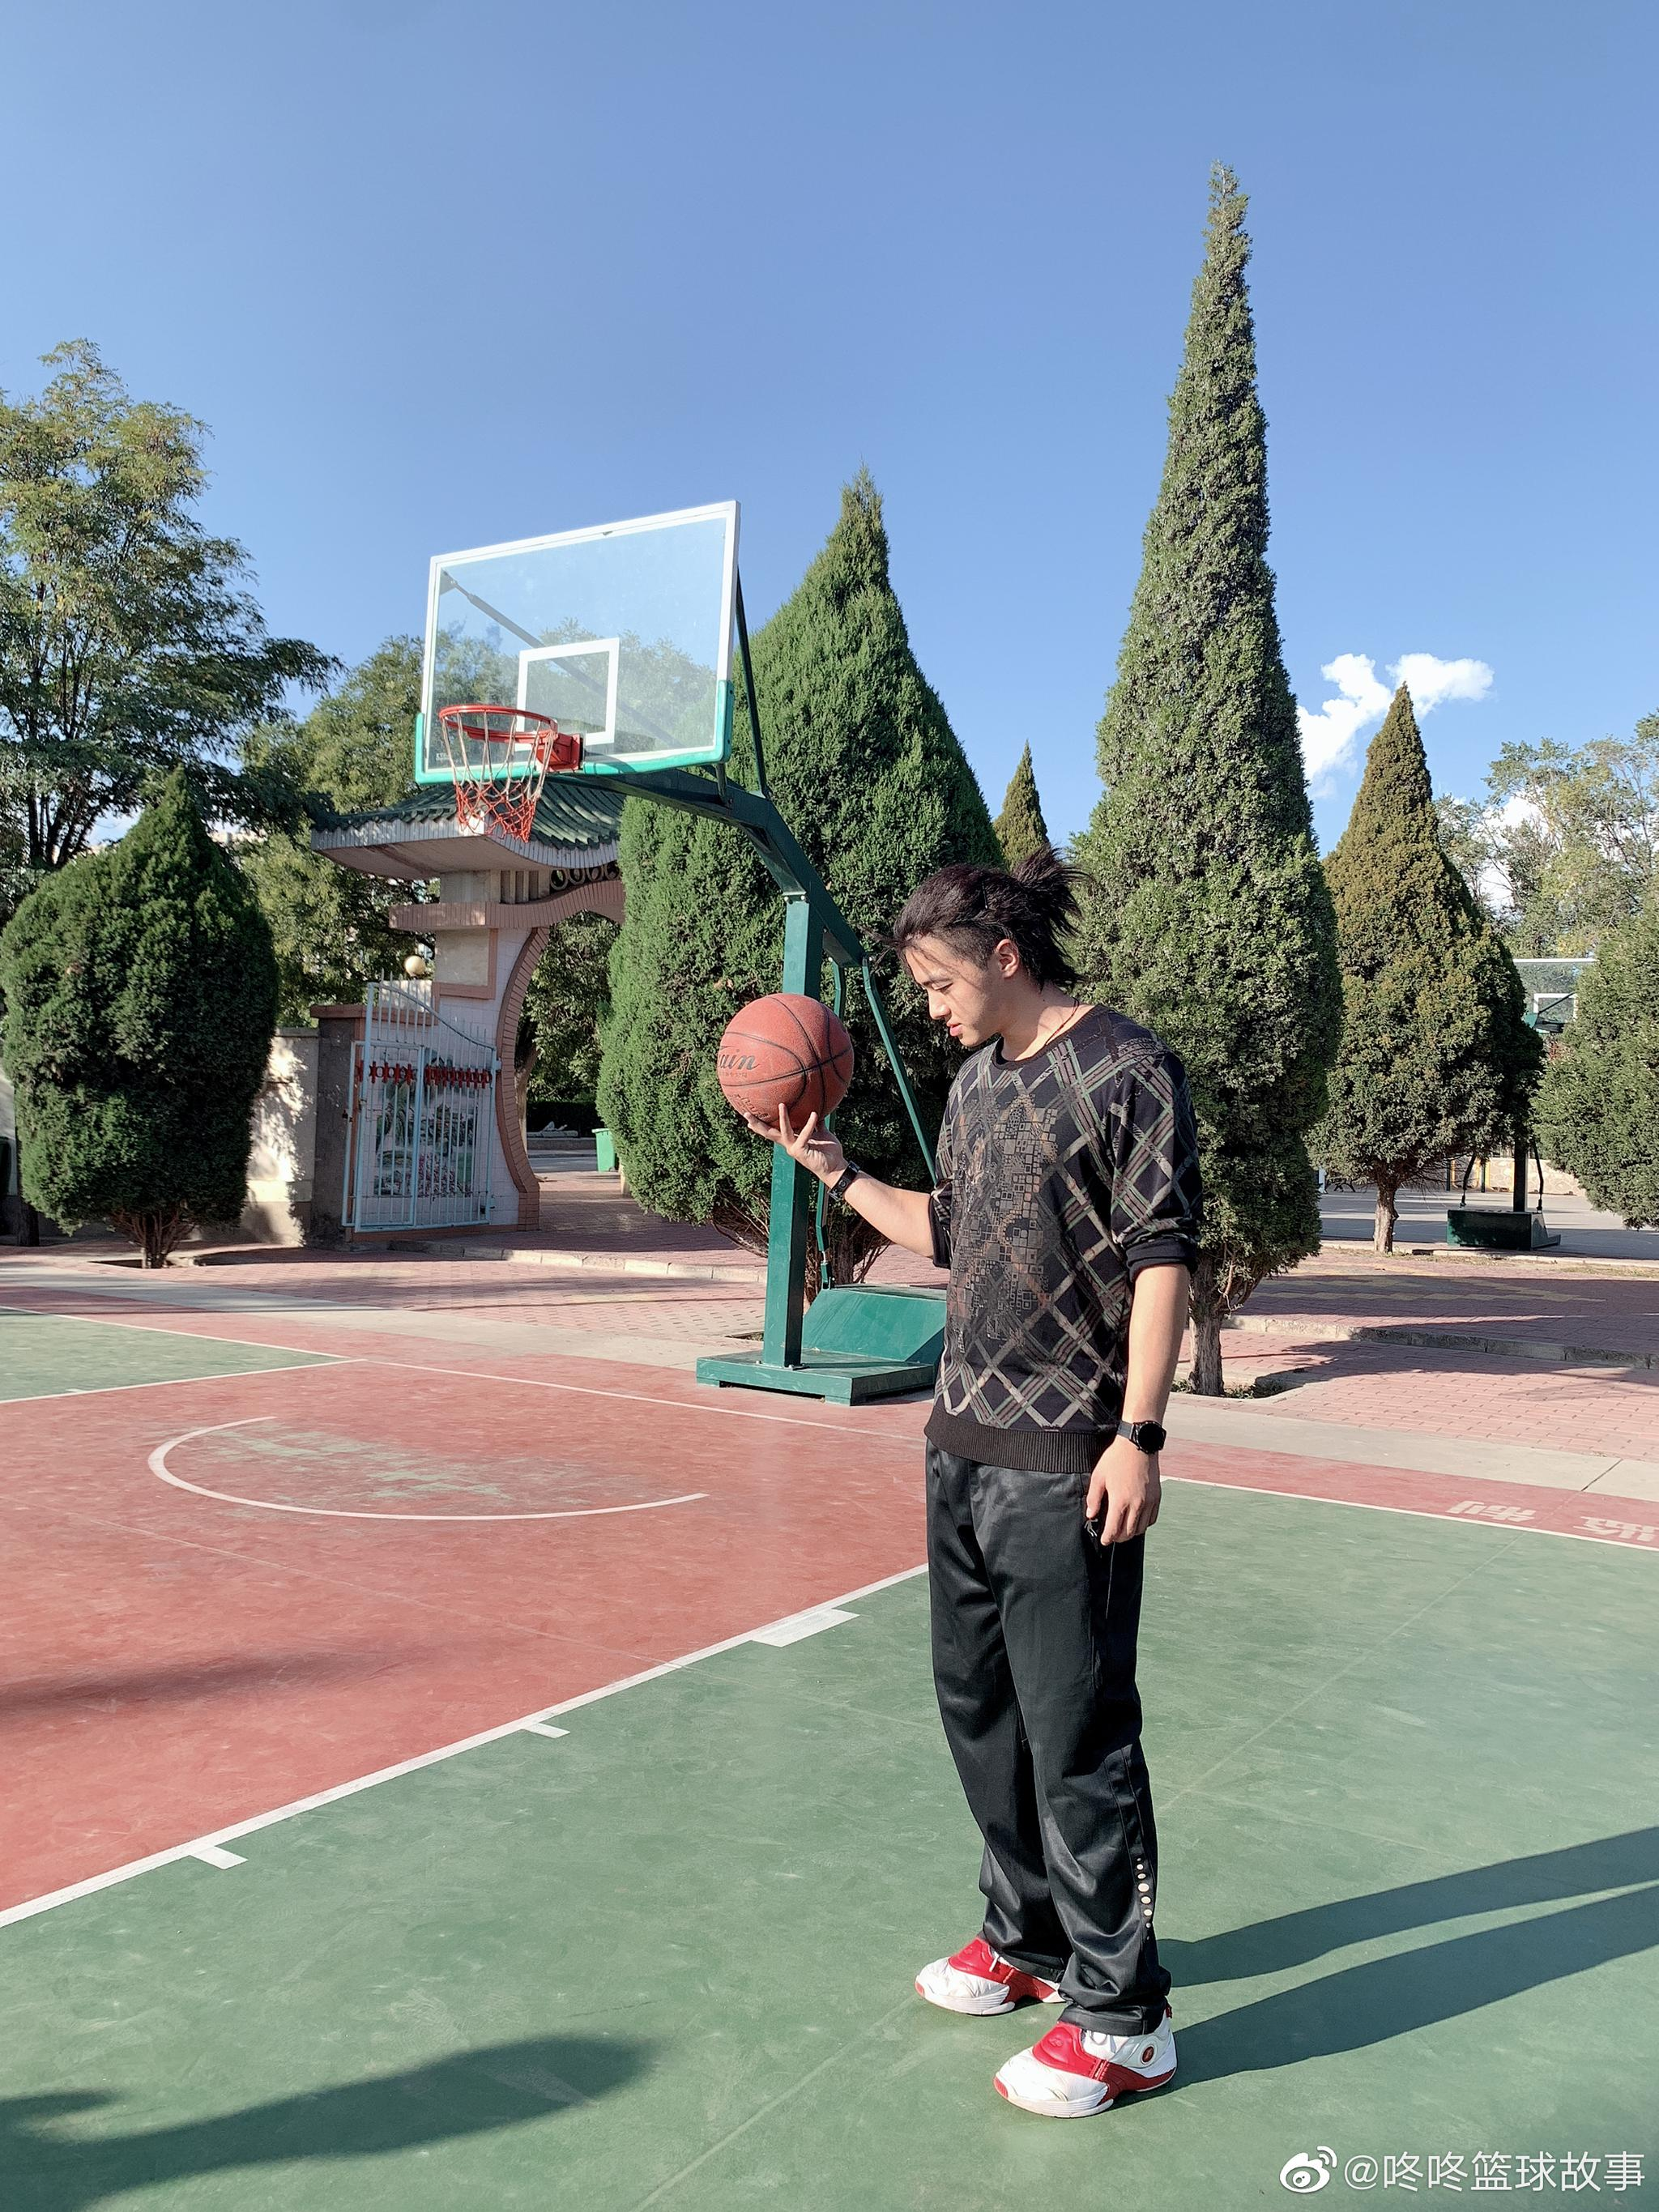 In my dreams I am not so far away from home.☯🏀